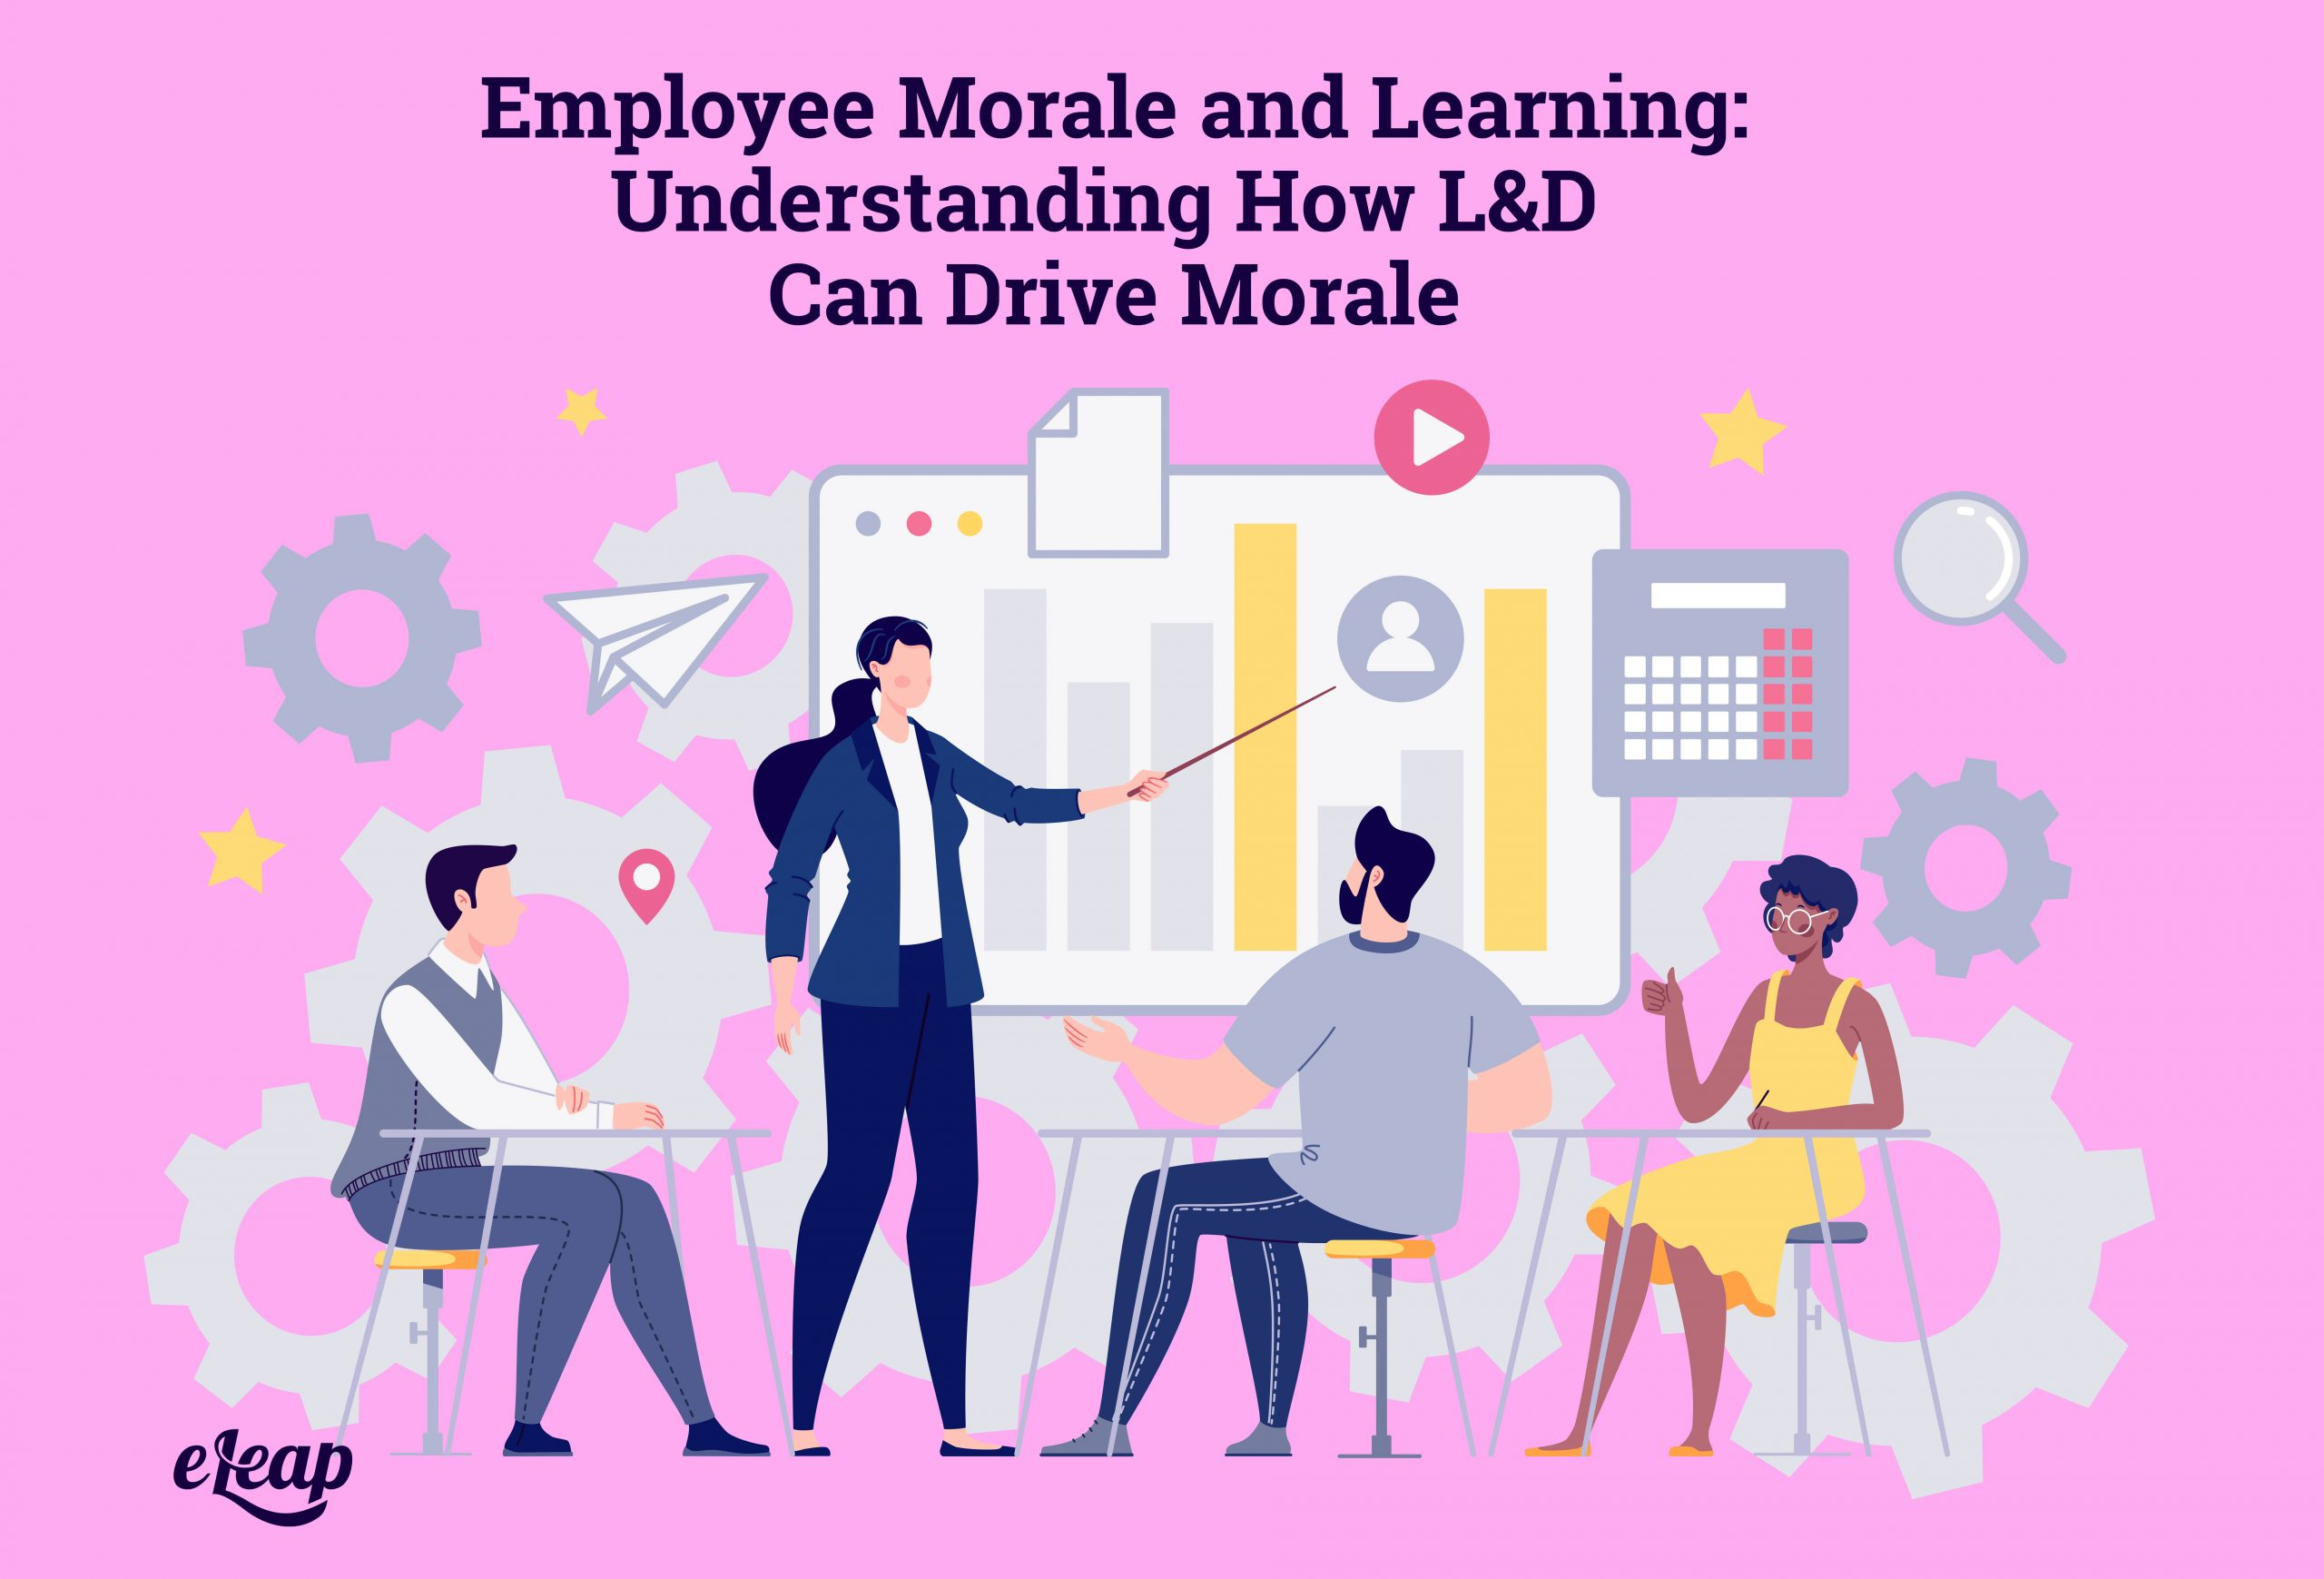 Employee Morale and Learning: Understanding How L&D Can Drive Morale